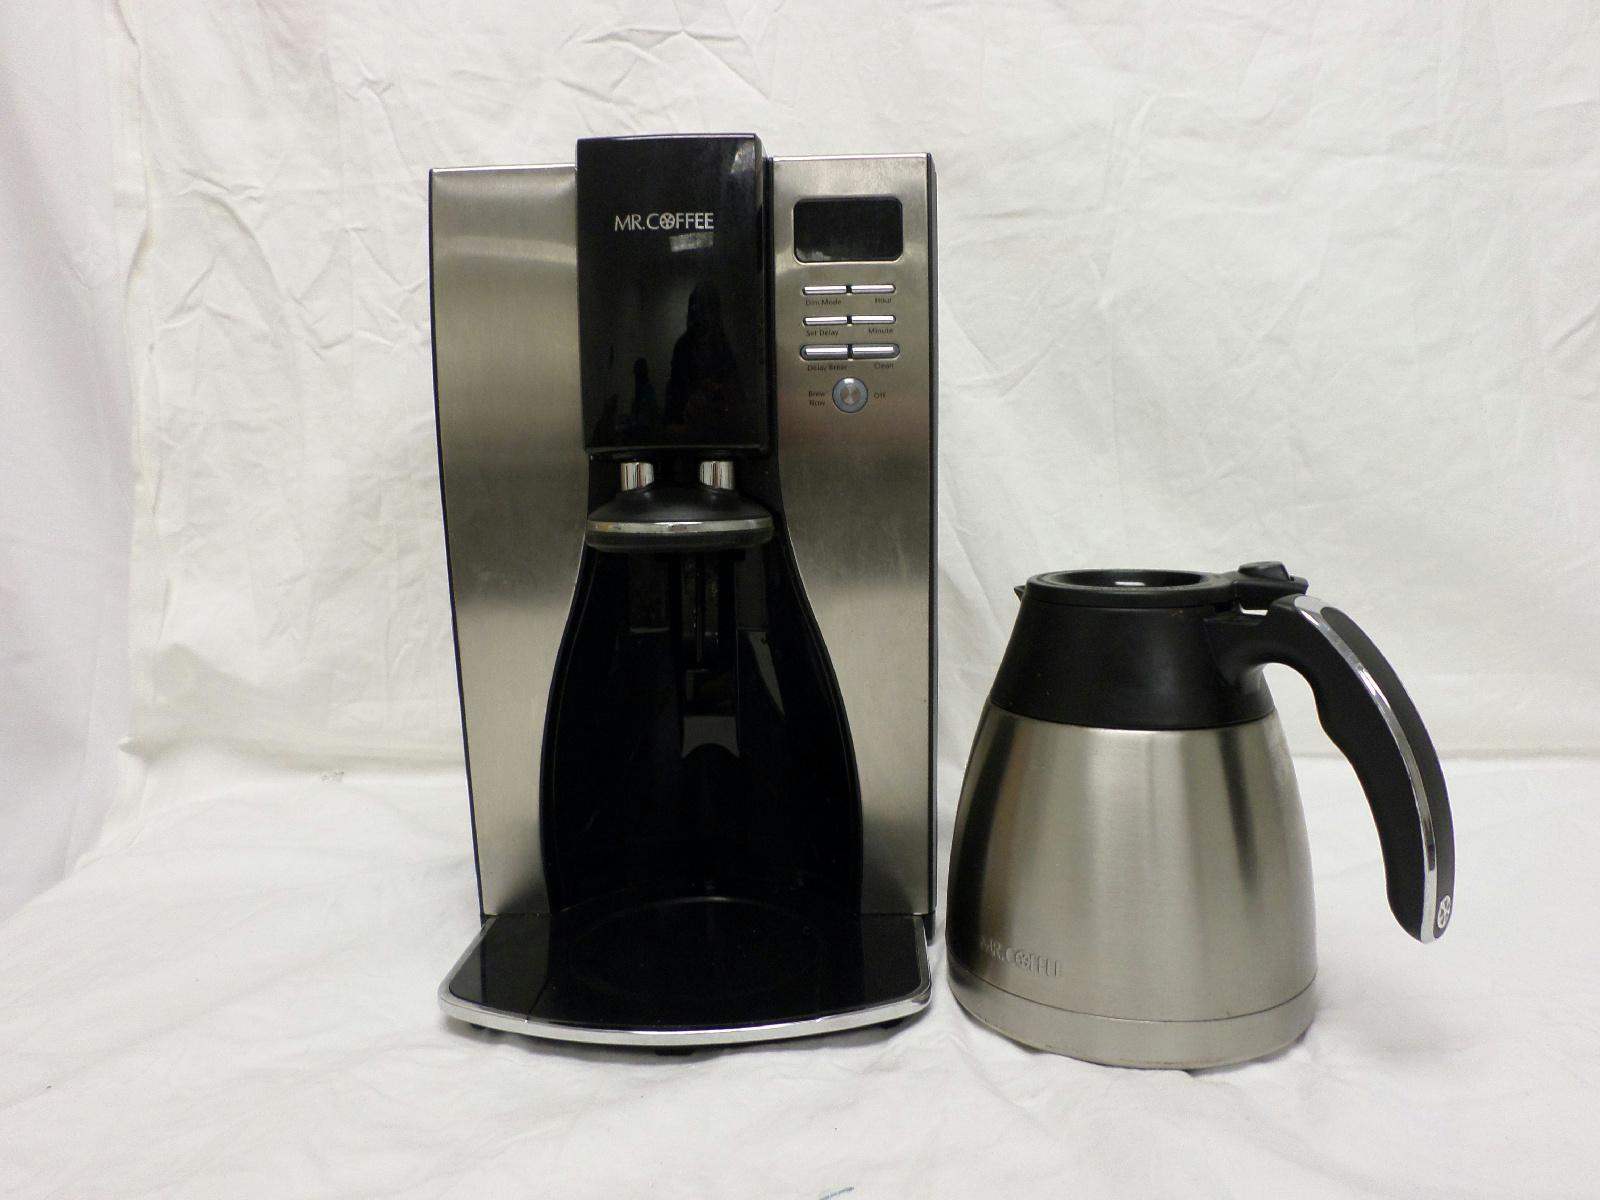 Thermal Coffee Maker Mr Coffee : Mr Coffee 10 Cup Stainless Steel Thermal Coffee Maker BVMC PSTX91 Black Silver eBay